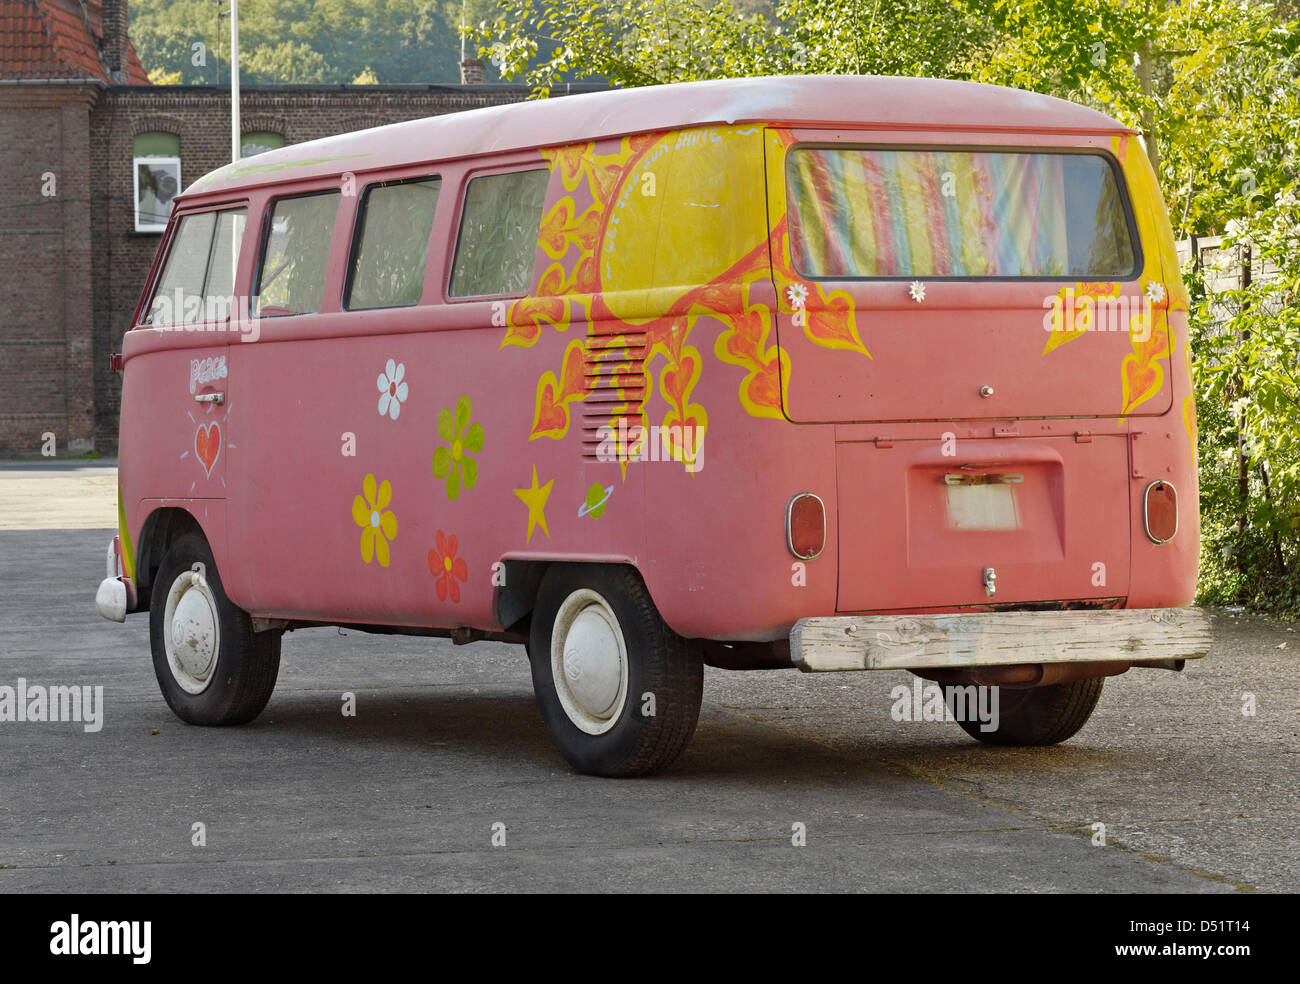 An Undated Handout Picture Shows A Volkswagen Hippie Bus From The